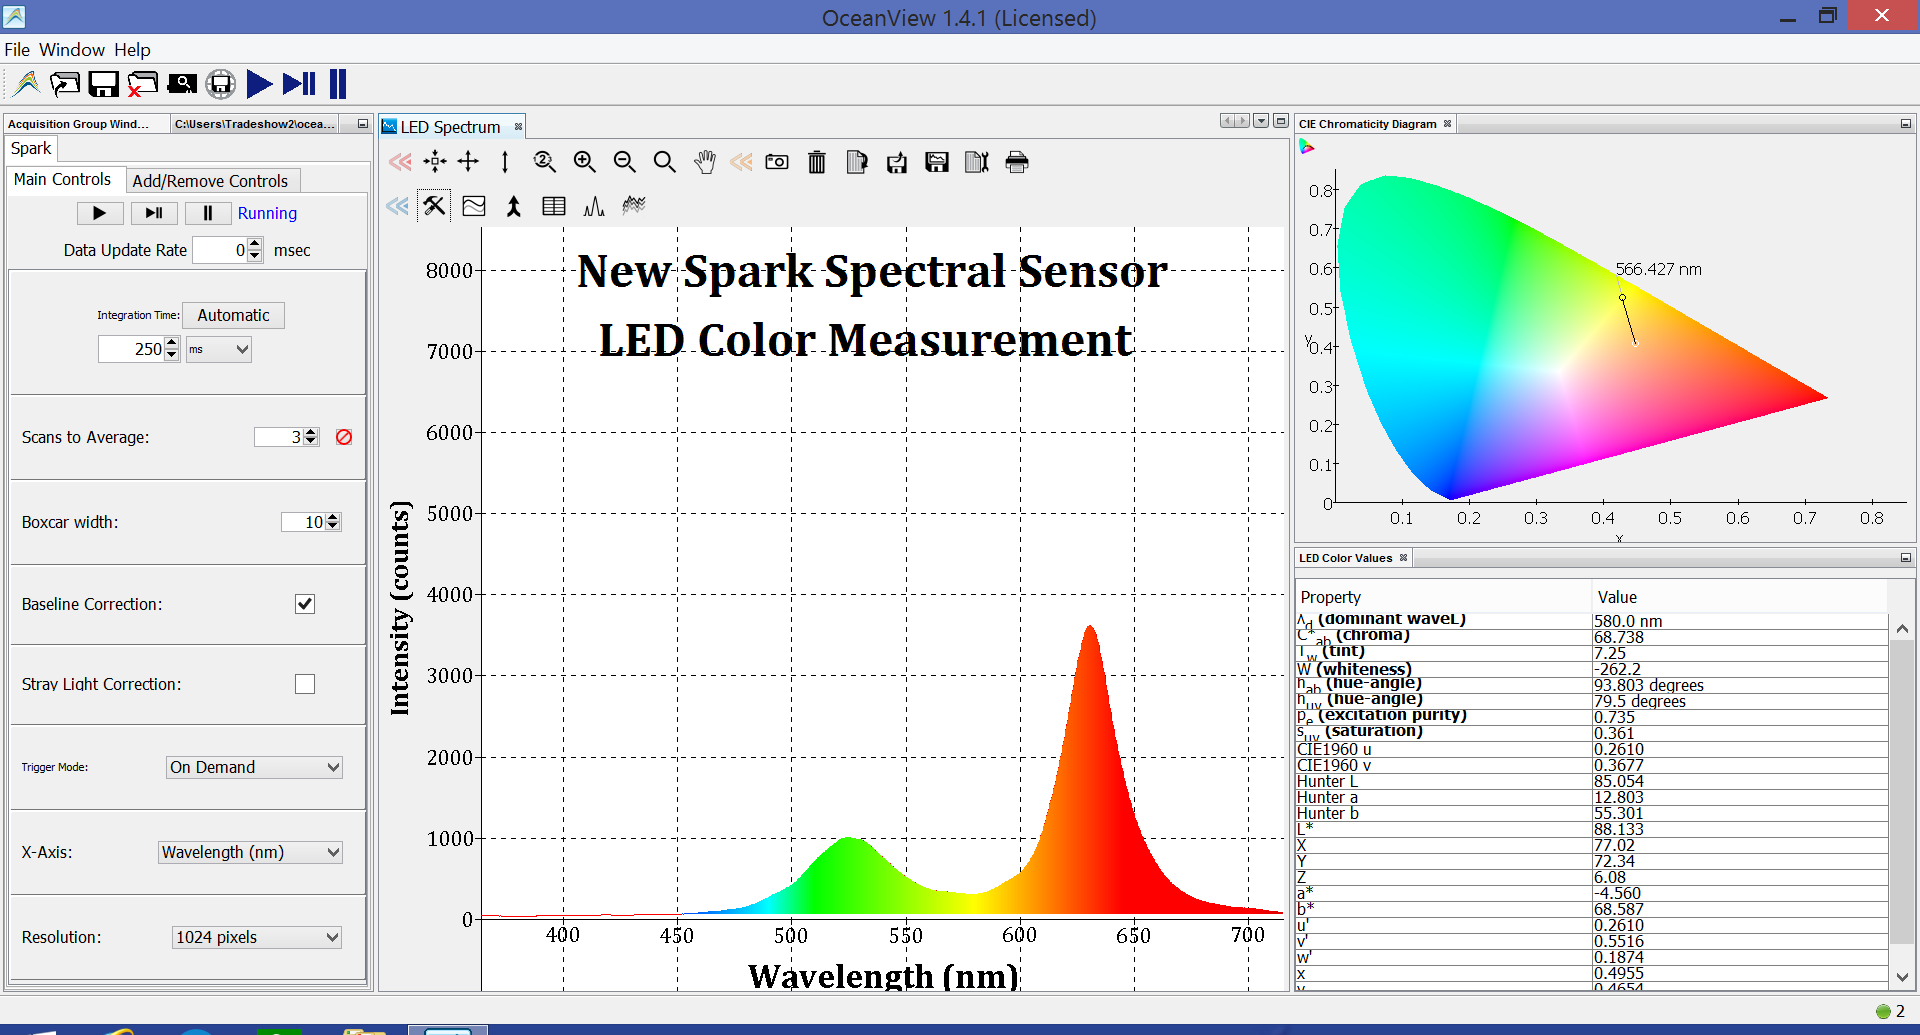 Led Color Measurement With Compact Spectral Sensor